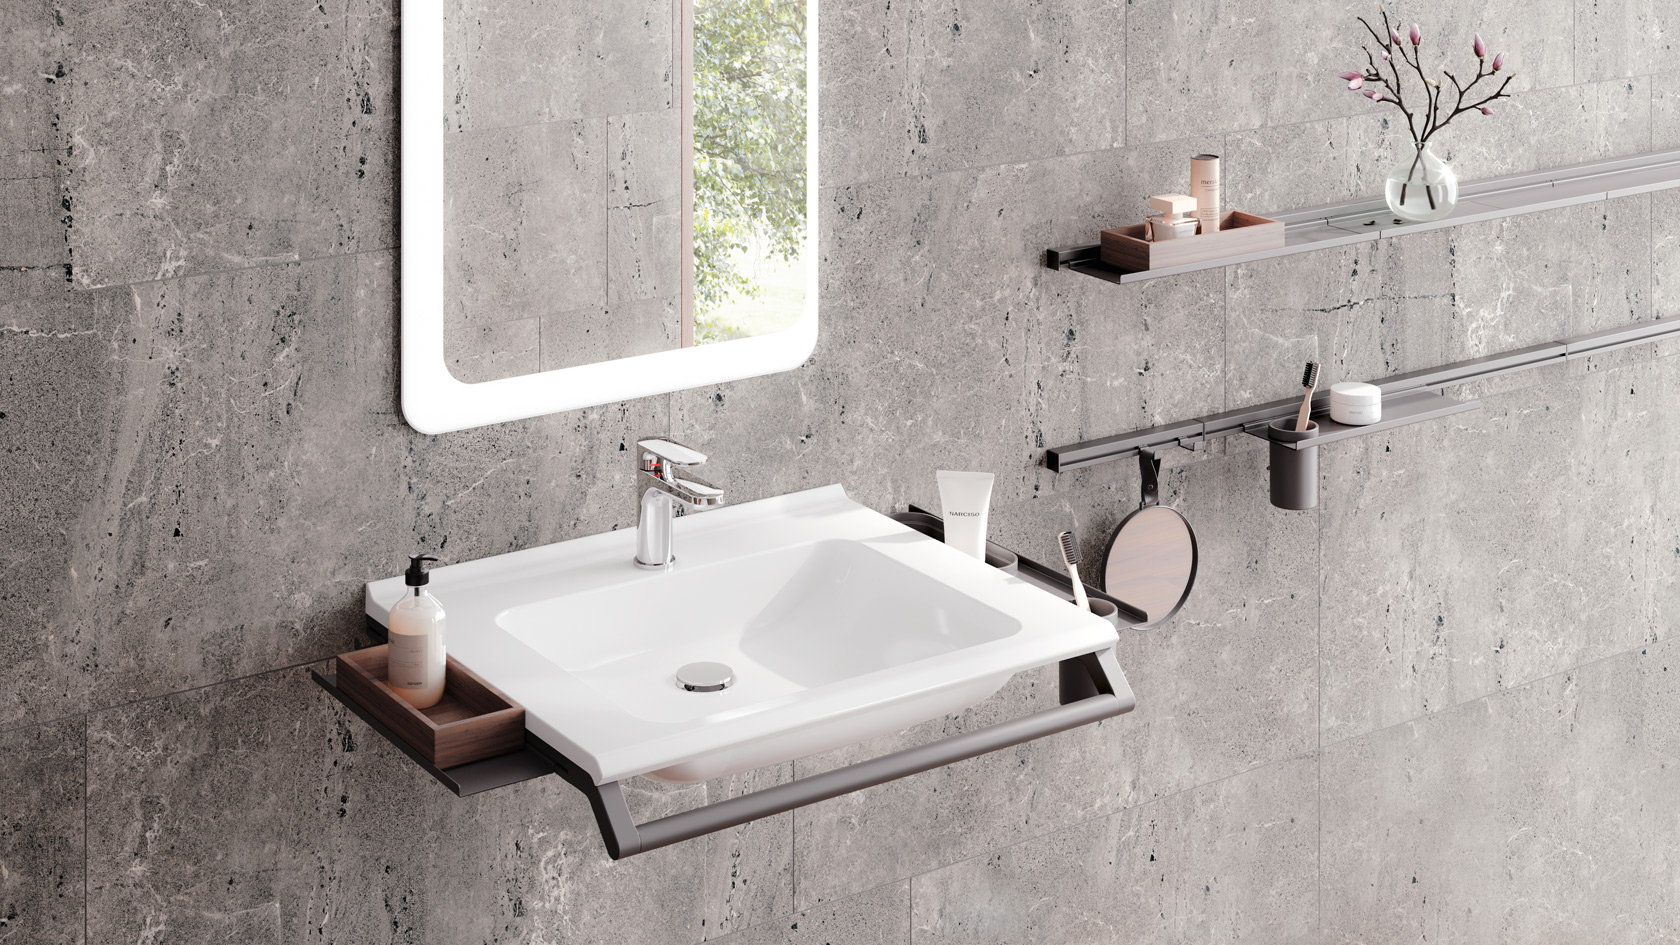 Washbasins and handbasins made of mineral composite are an alternative to ceramic or porcelain. Accessibly designed they fit in every bathroom and offer excellent, easy-care design.